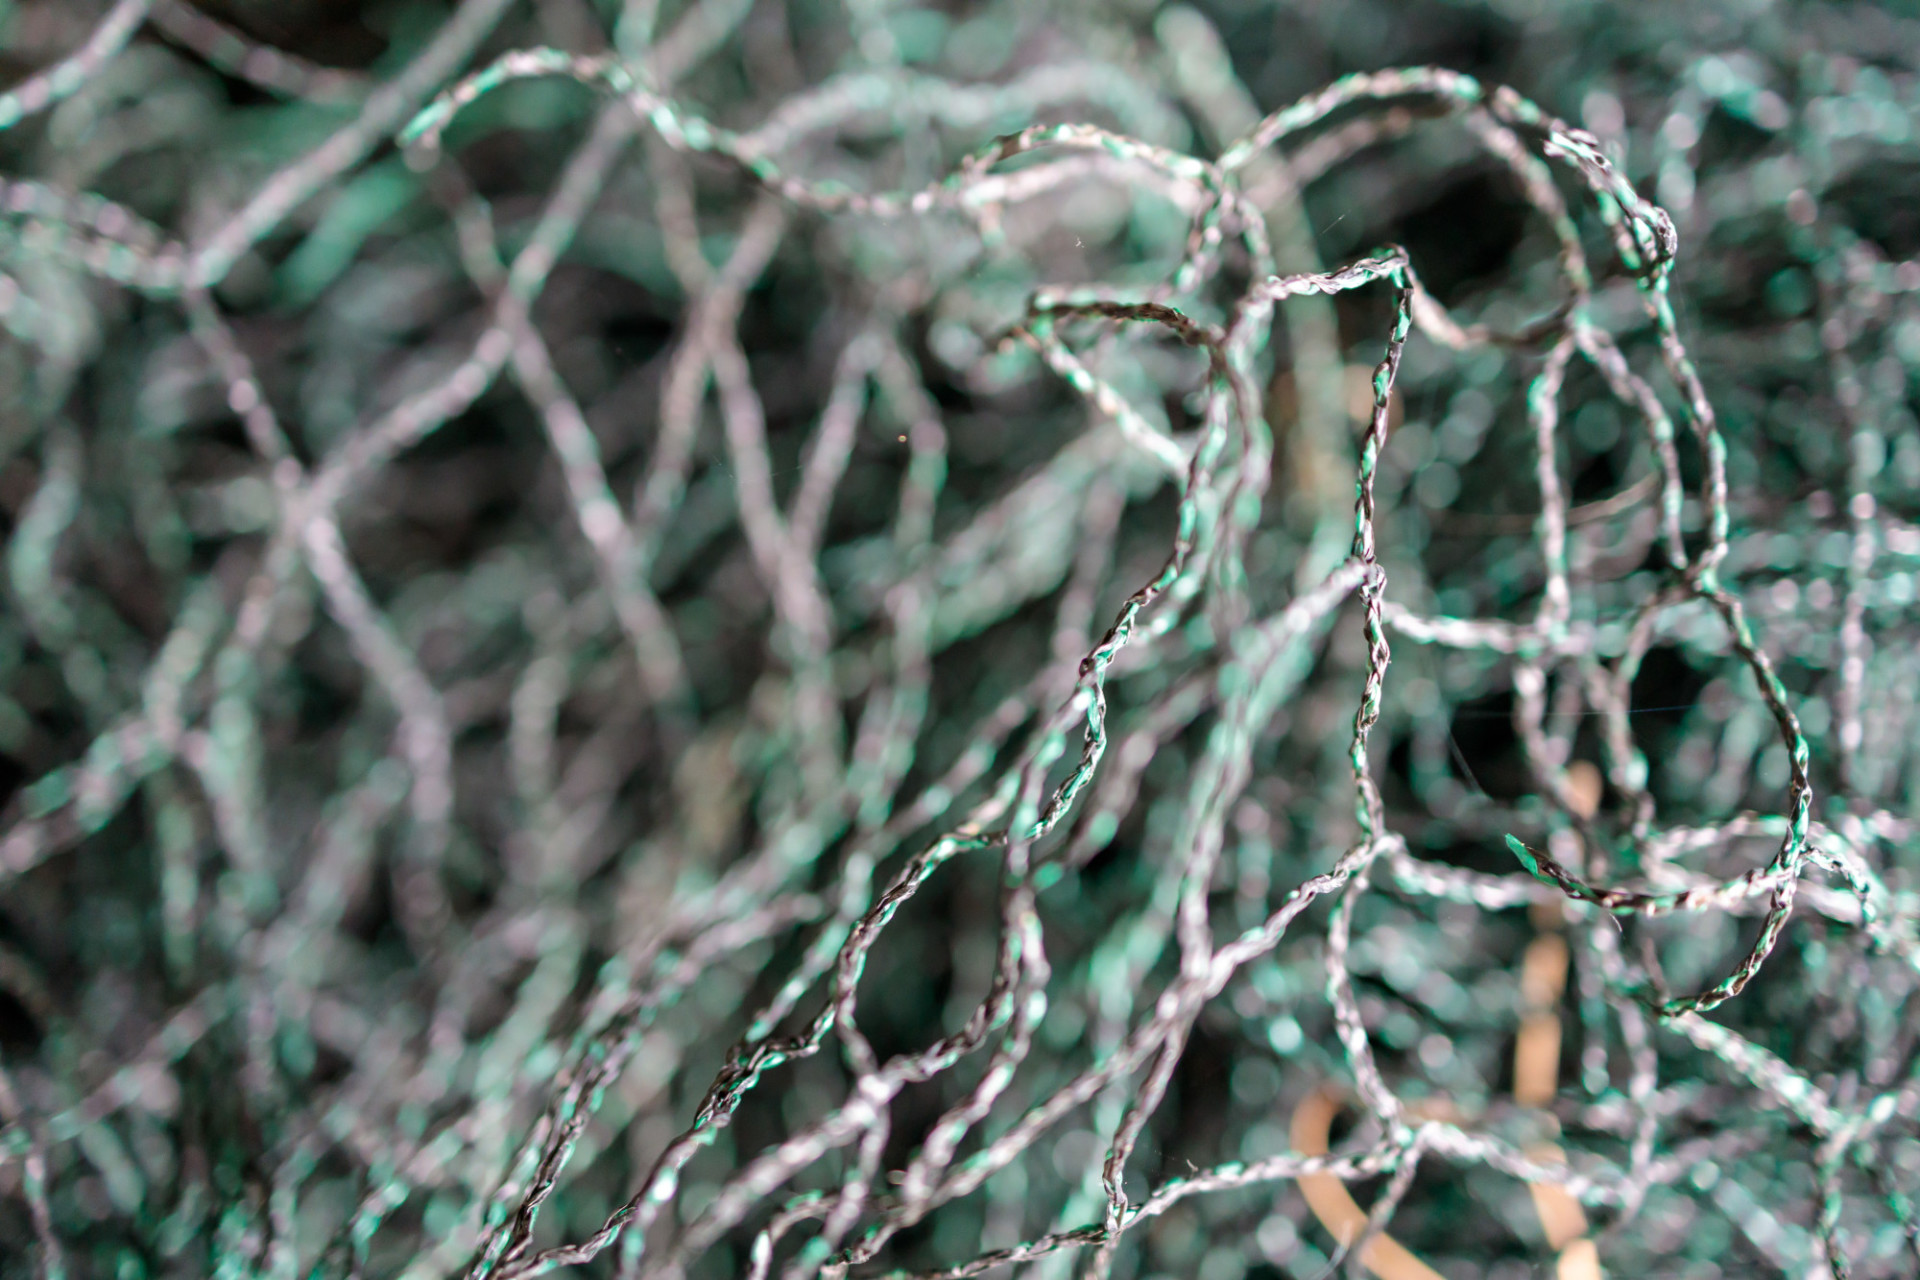 Fishing net from the near